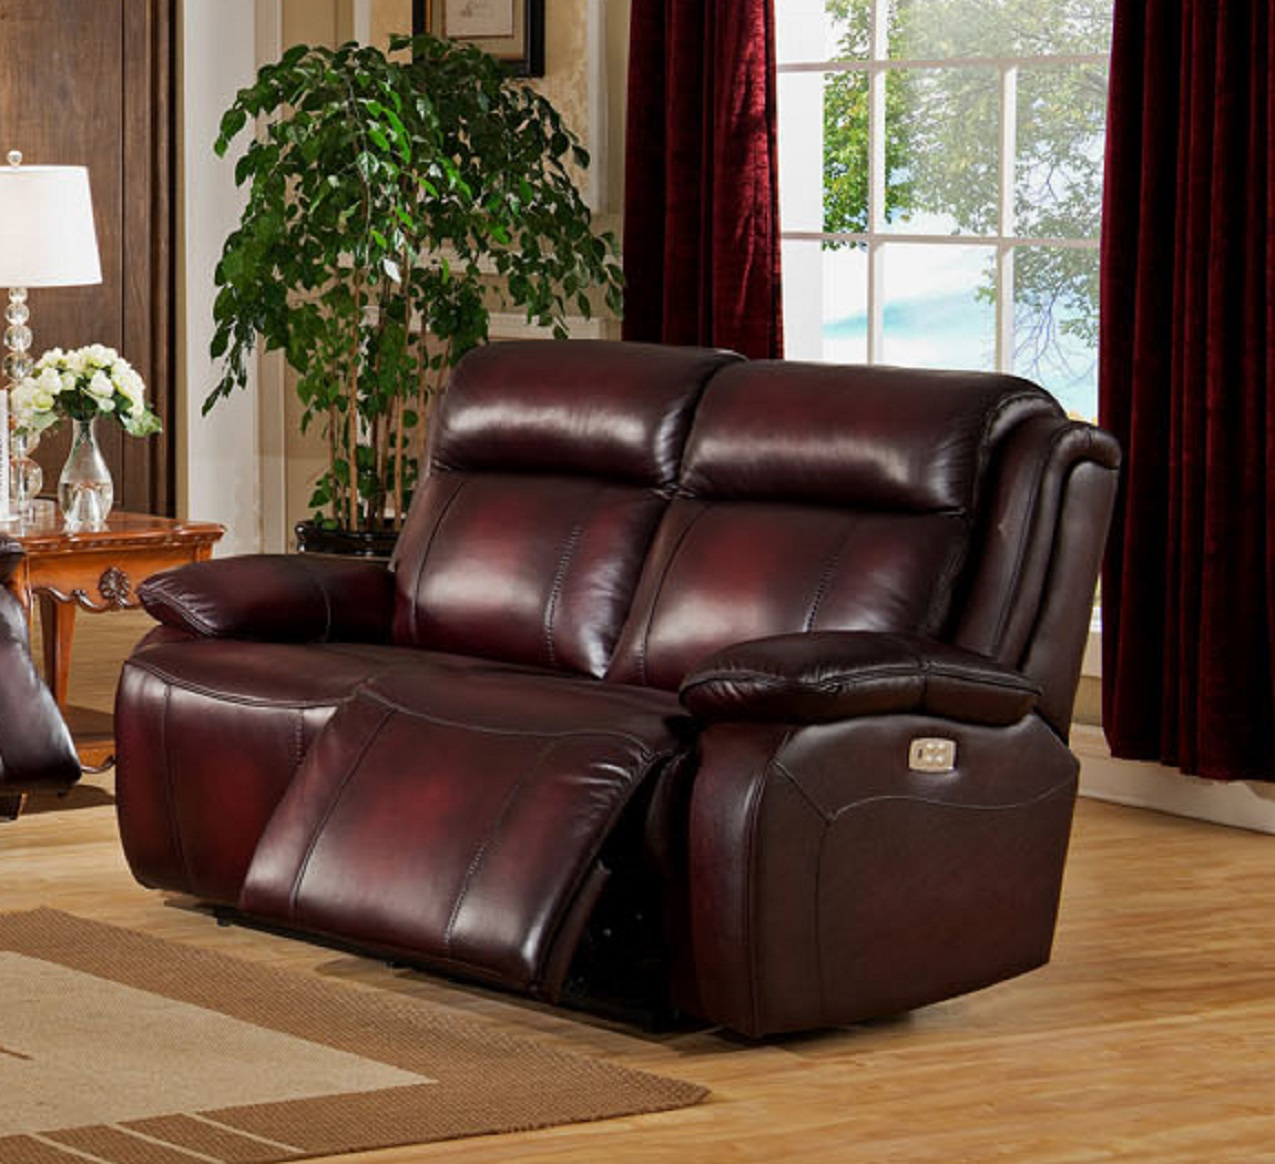 Pleasant Faraday Two Tone Top Grain Leather Power Reclining Loveseat Inzonedesignstudio Interior Chair Design Inzonedesignstudiocom